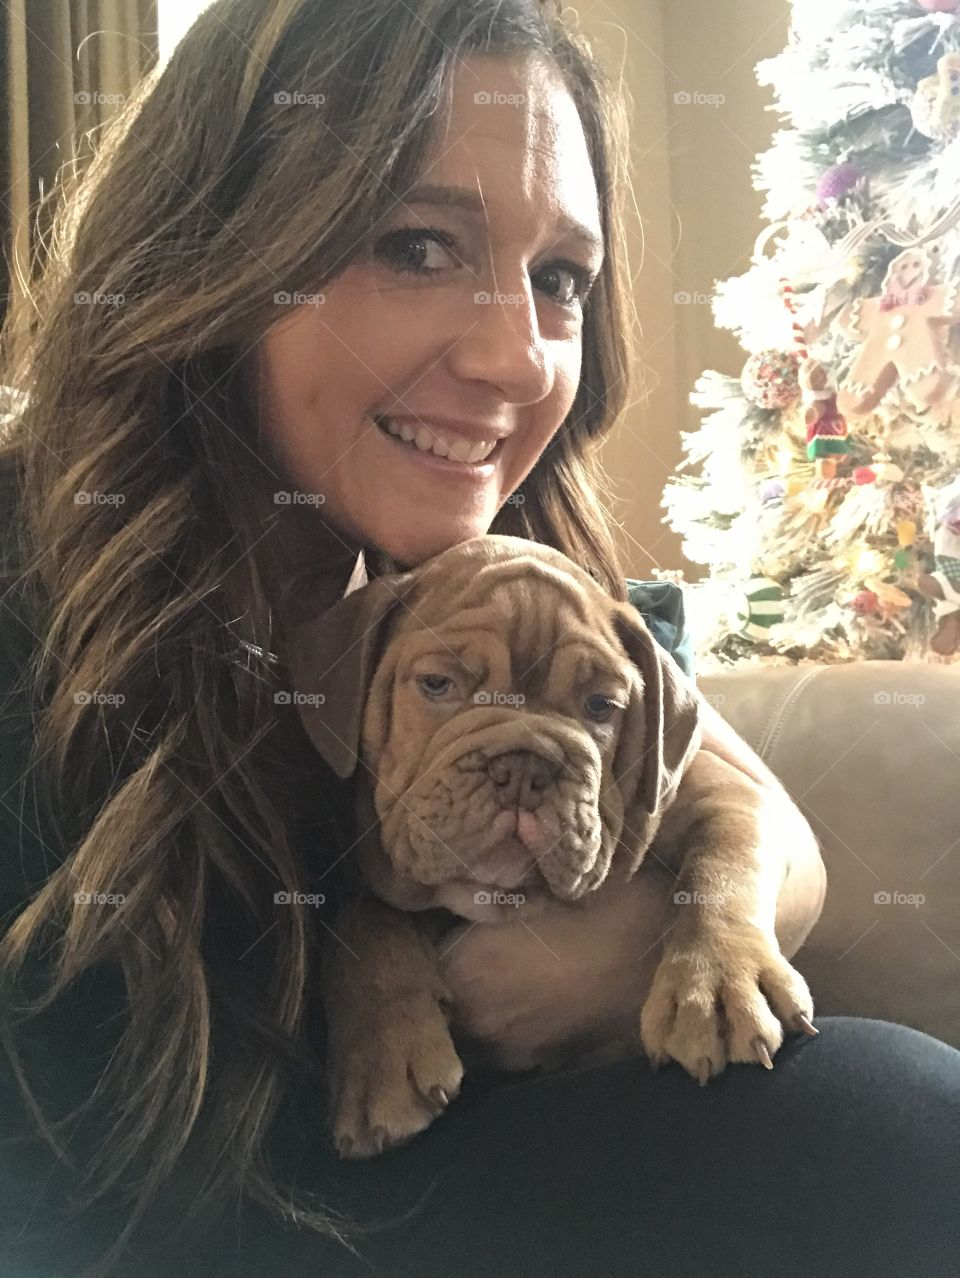 Cuddling with an adorable bulldog puppy in front of a Christmas tree.